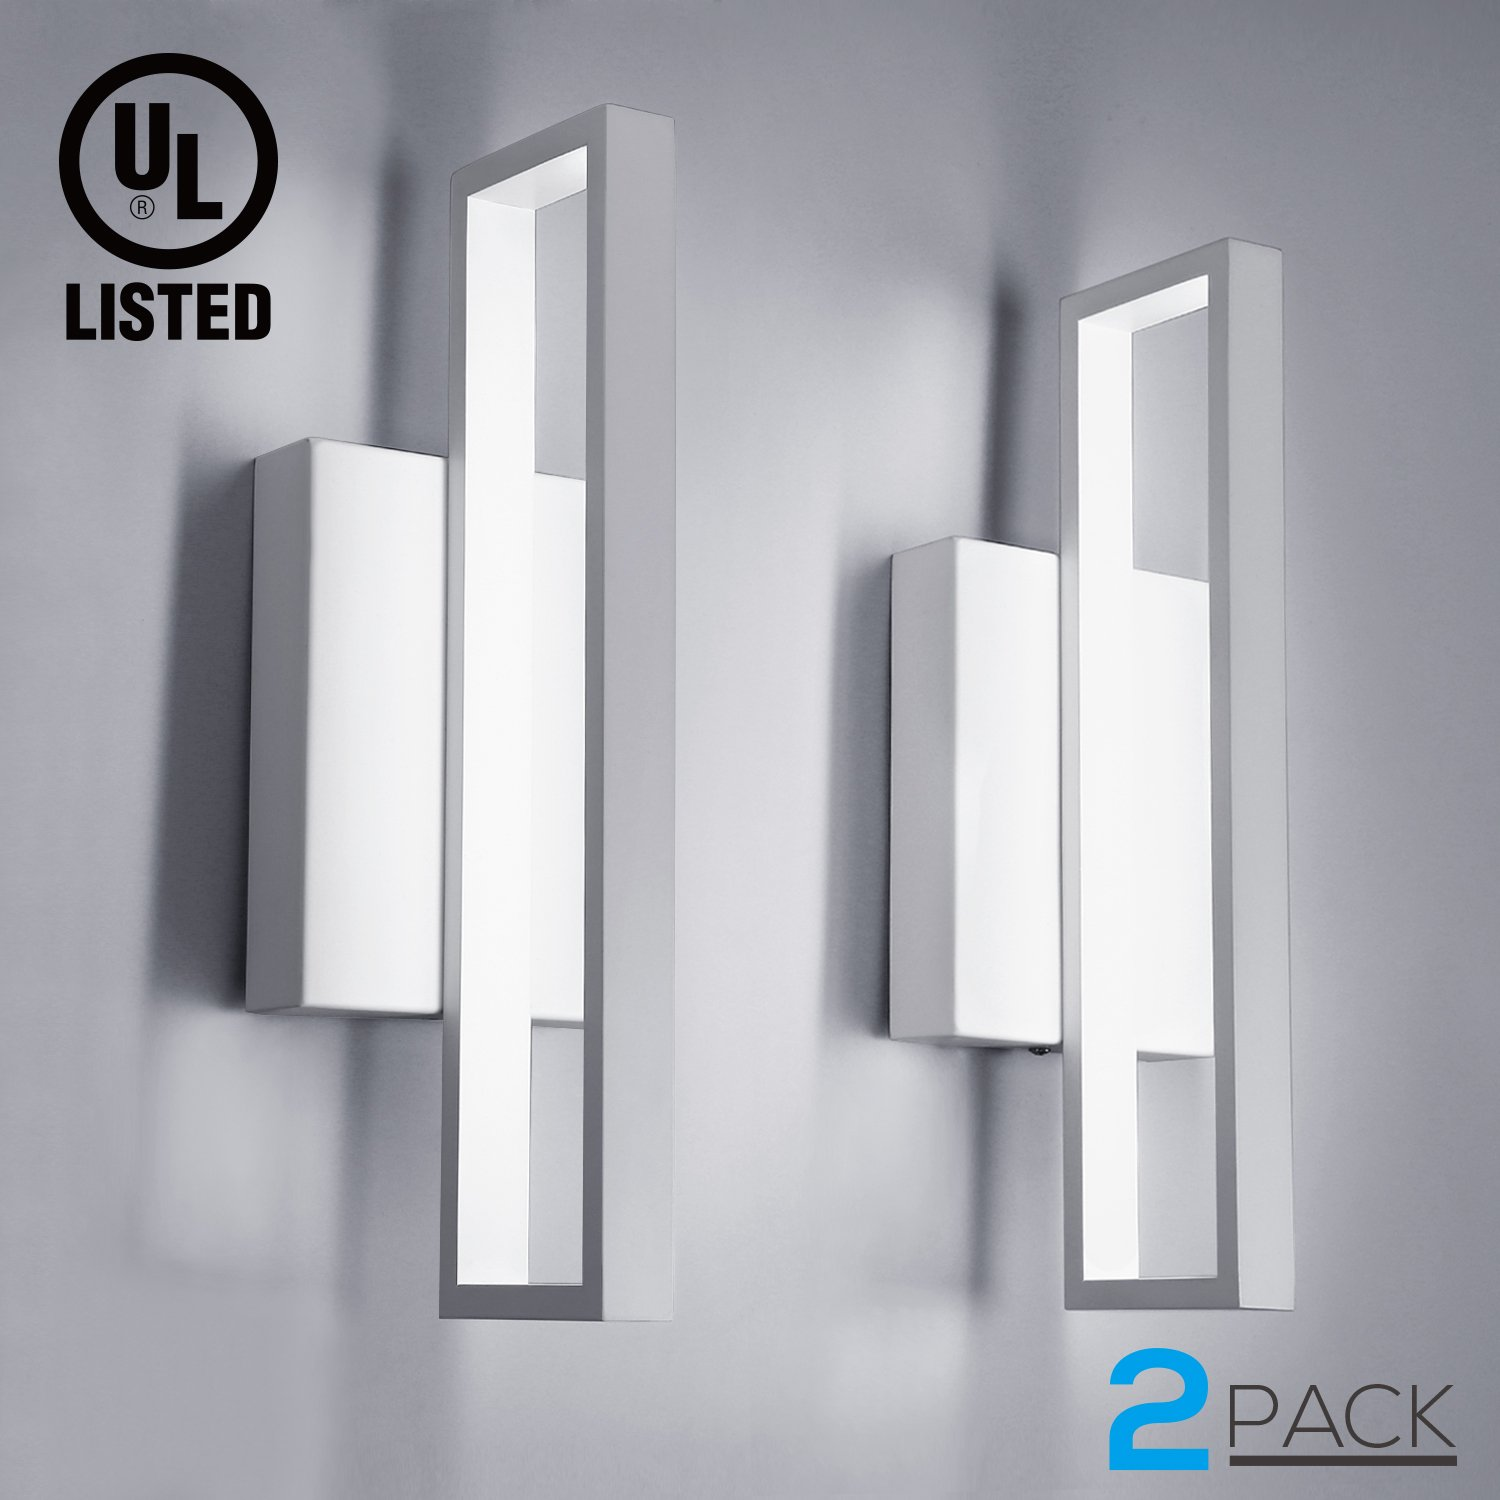 2 Pack 12W LED Square Wall Sconce Lights, 75W Equiv, 660lm Surface Mounted LED Wall Lamp, Room Decor for Office, Living Room, Bedroom, Hallway, Corridor